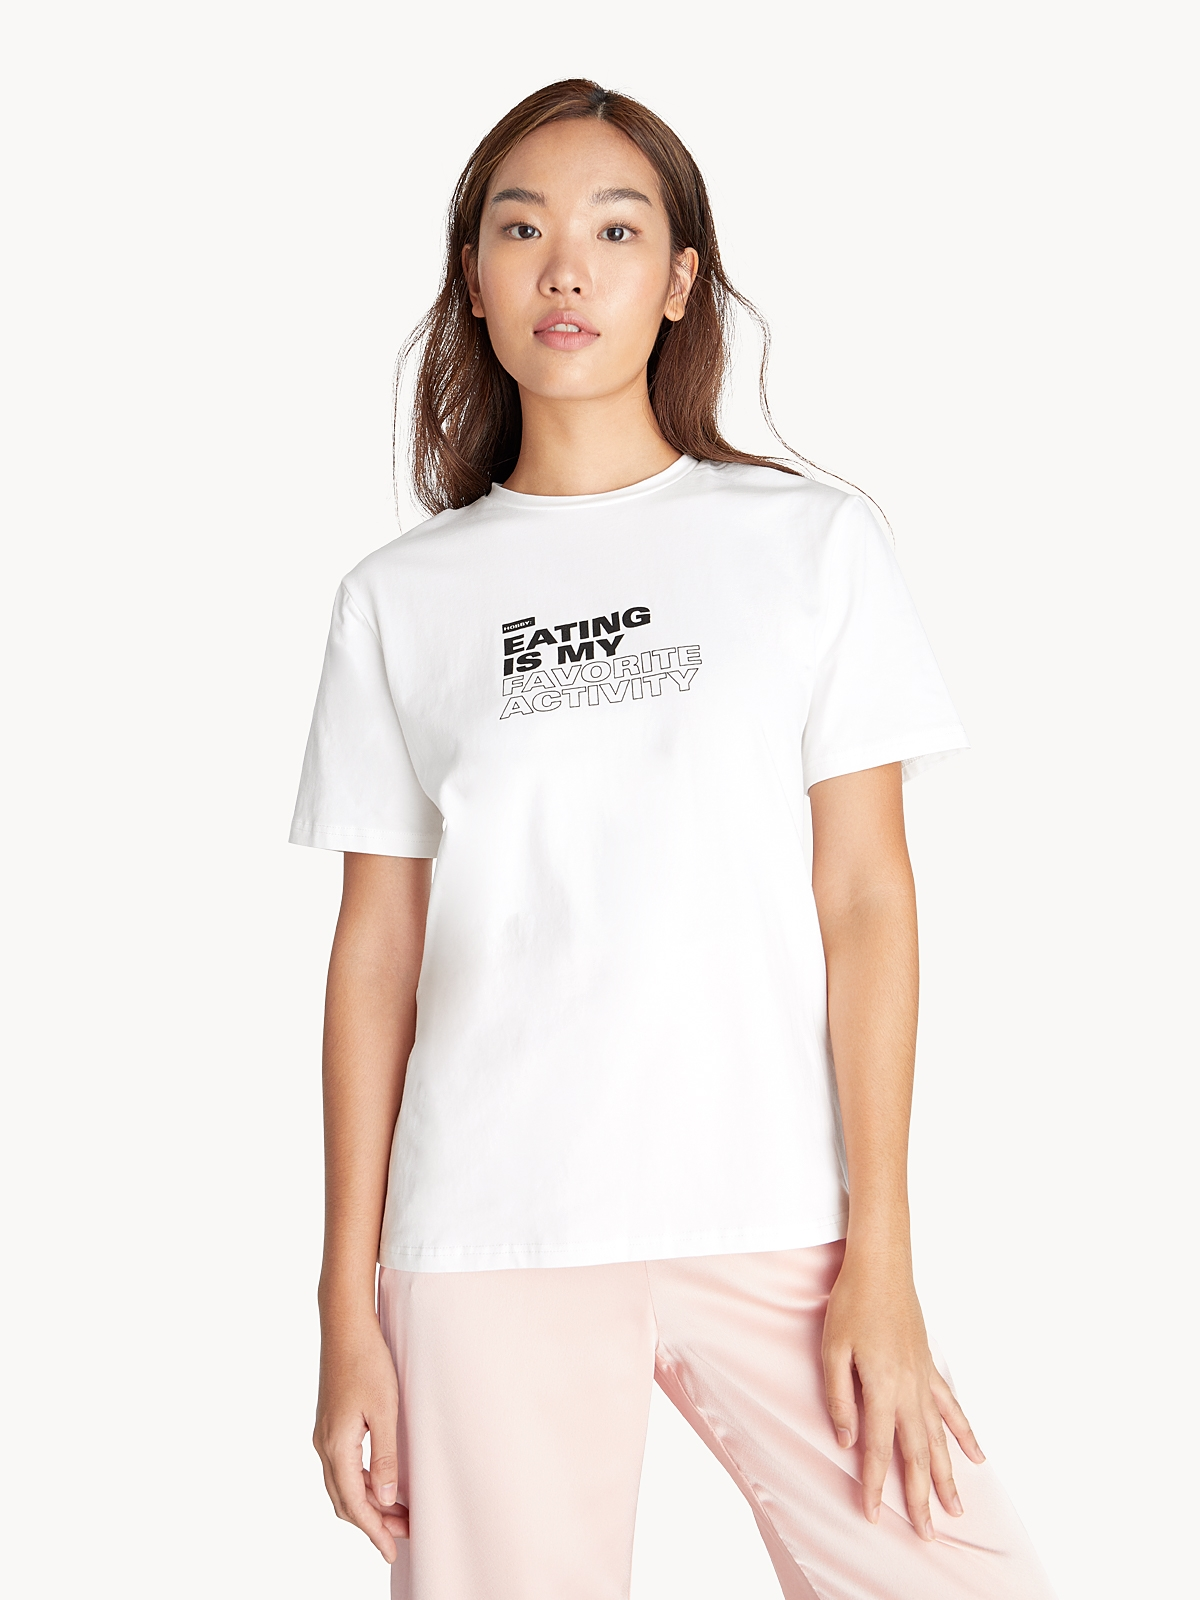 Eating Is My Fave Graphic Tee White